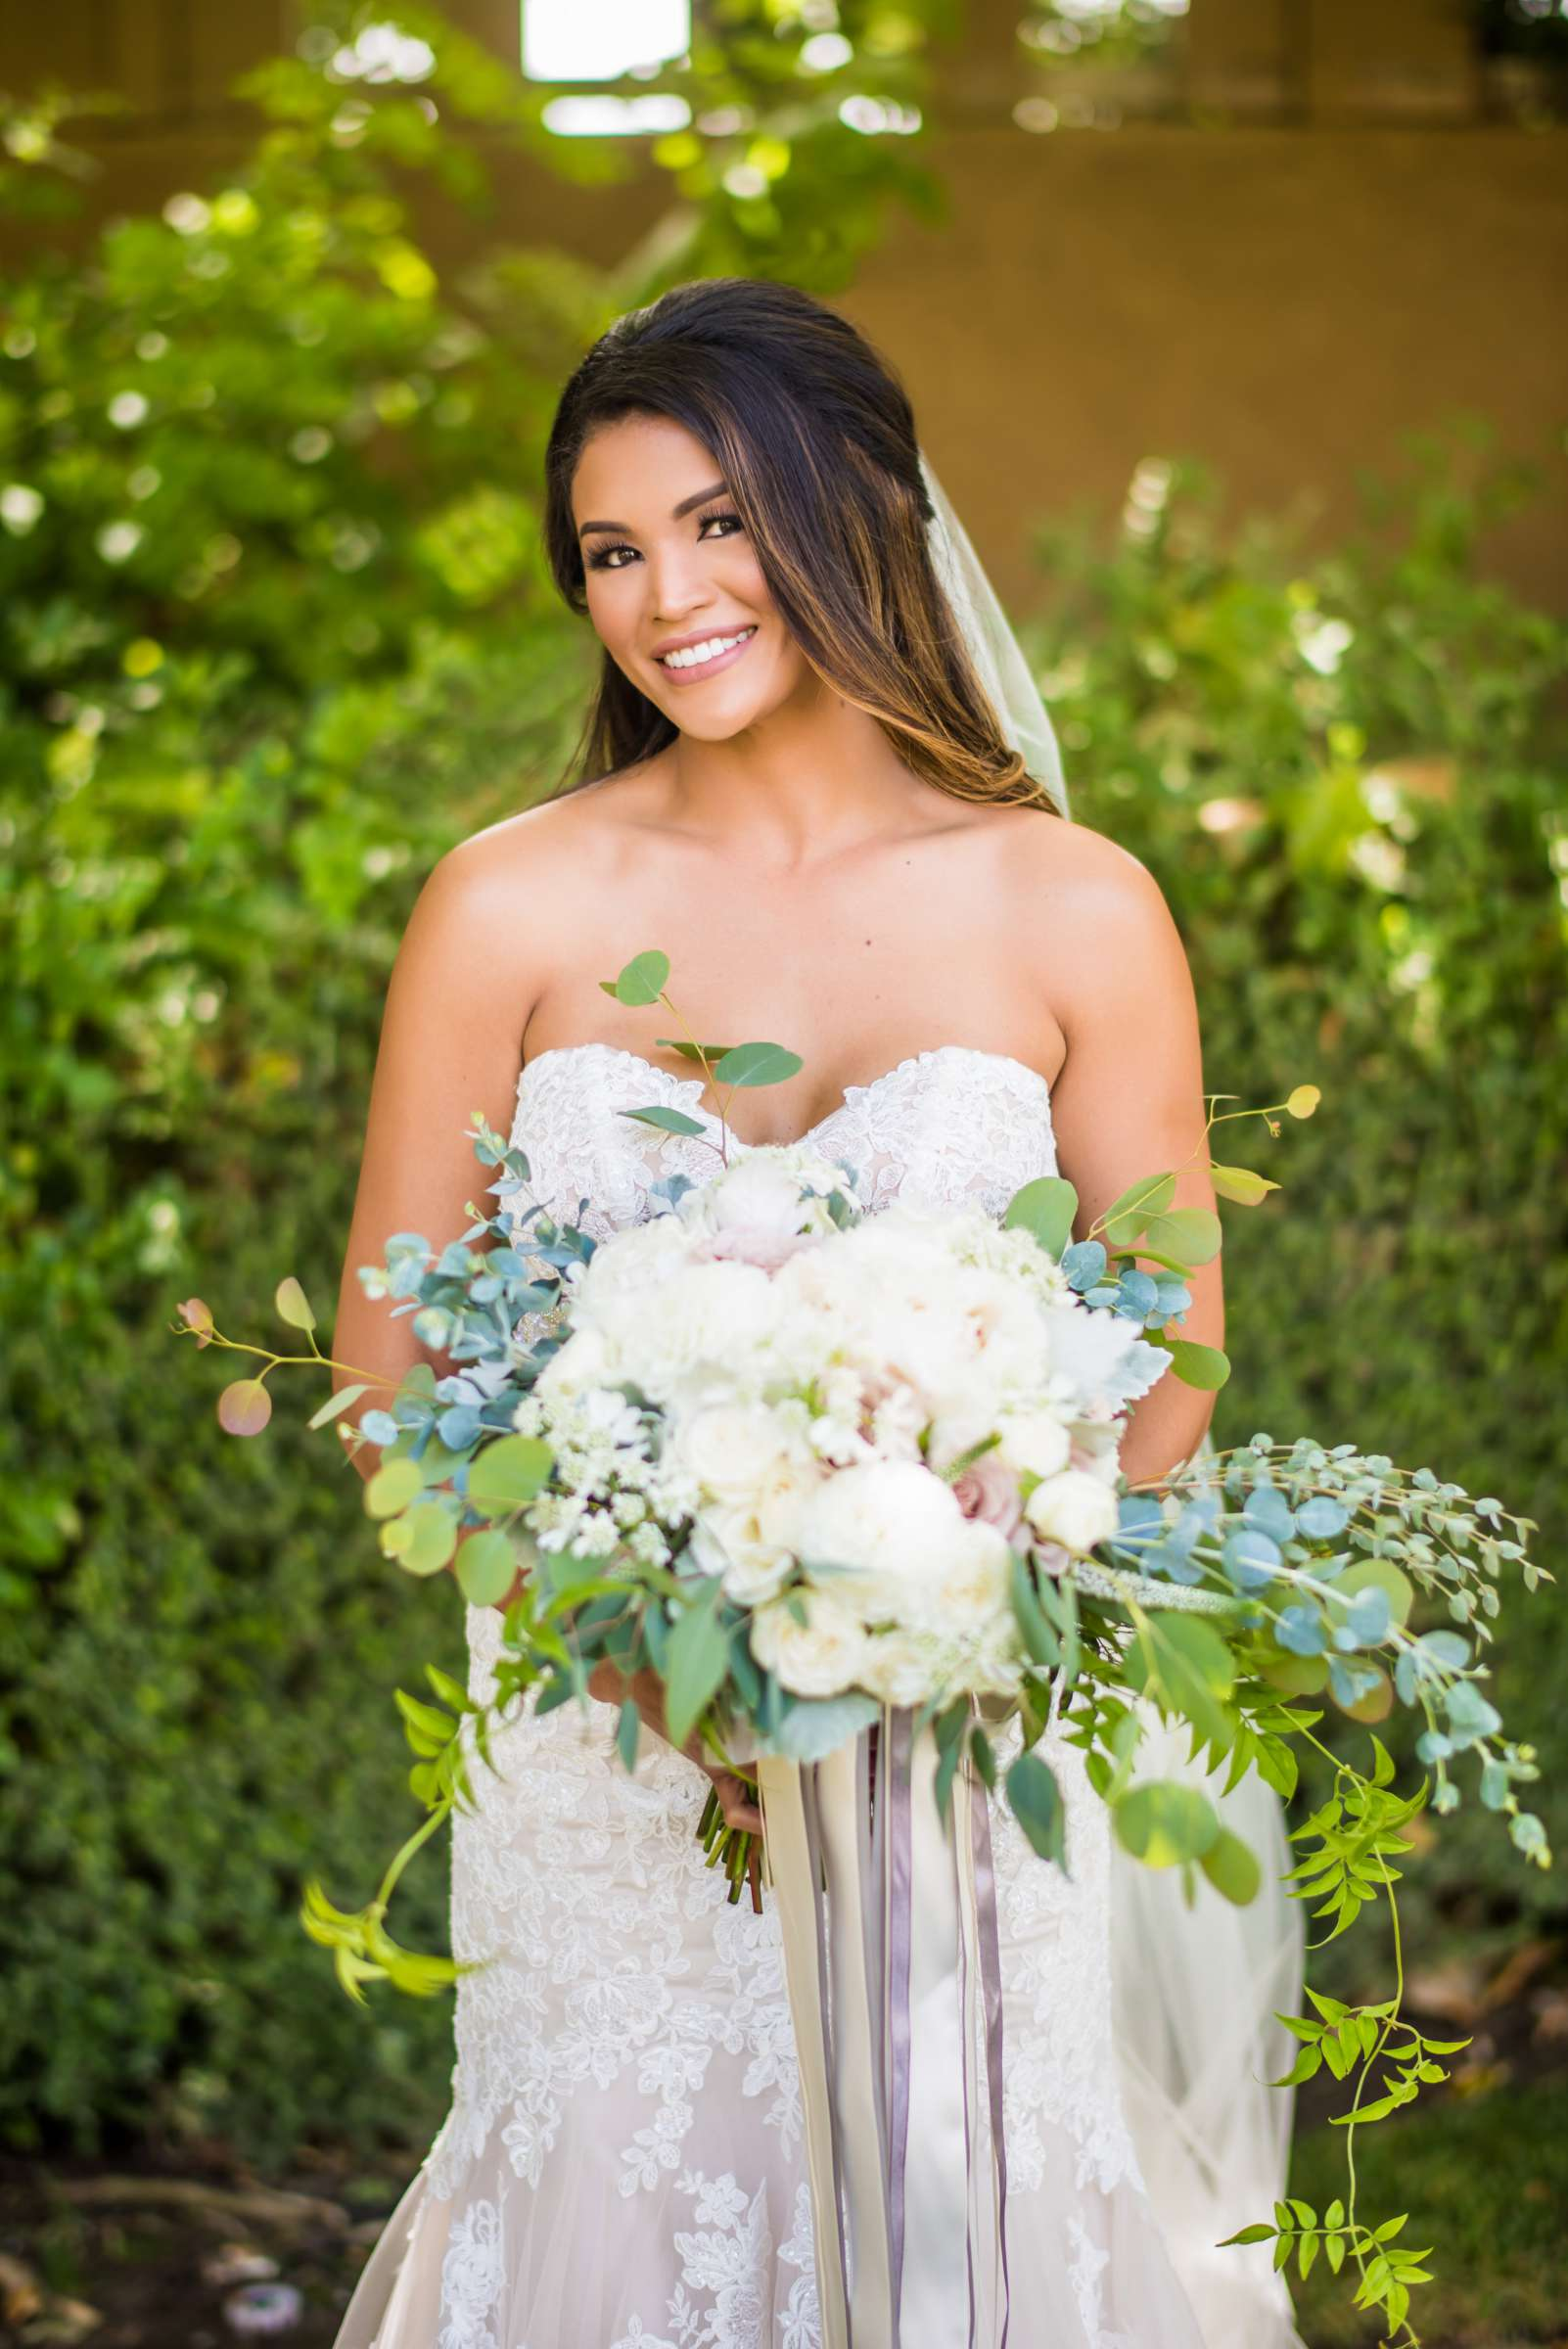 Scripps Seaside Forum Wedding coordinated by Lavish Weddings, Cindy and Justin Wedding Photo #381807 by True Photography